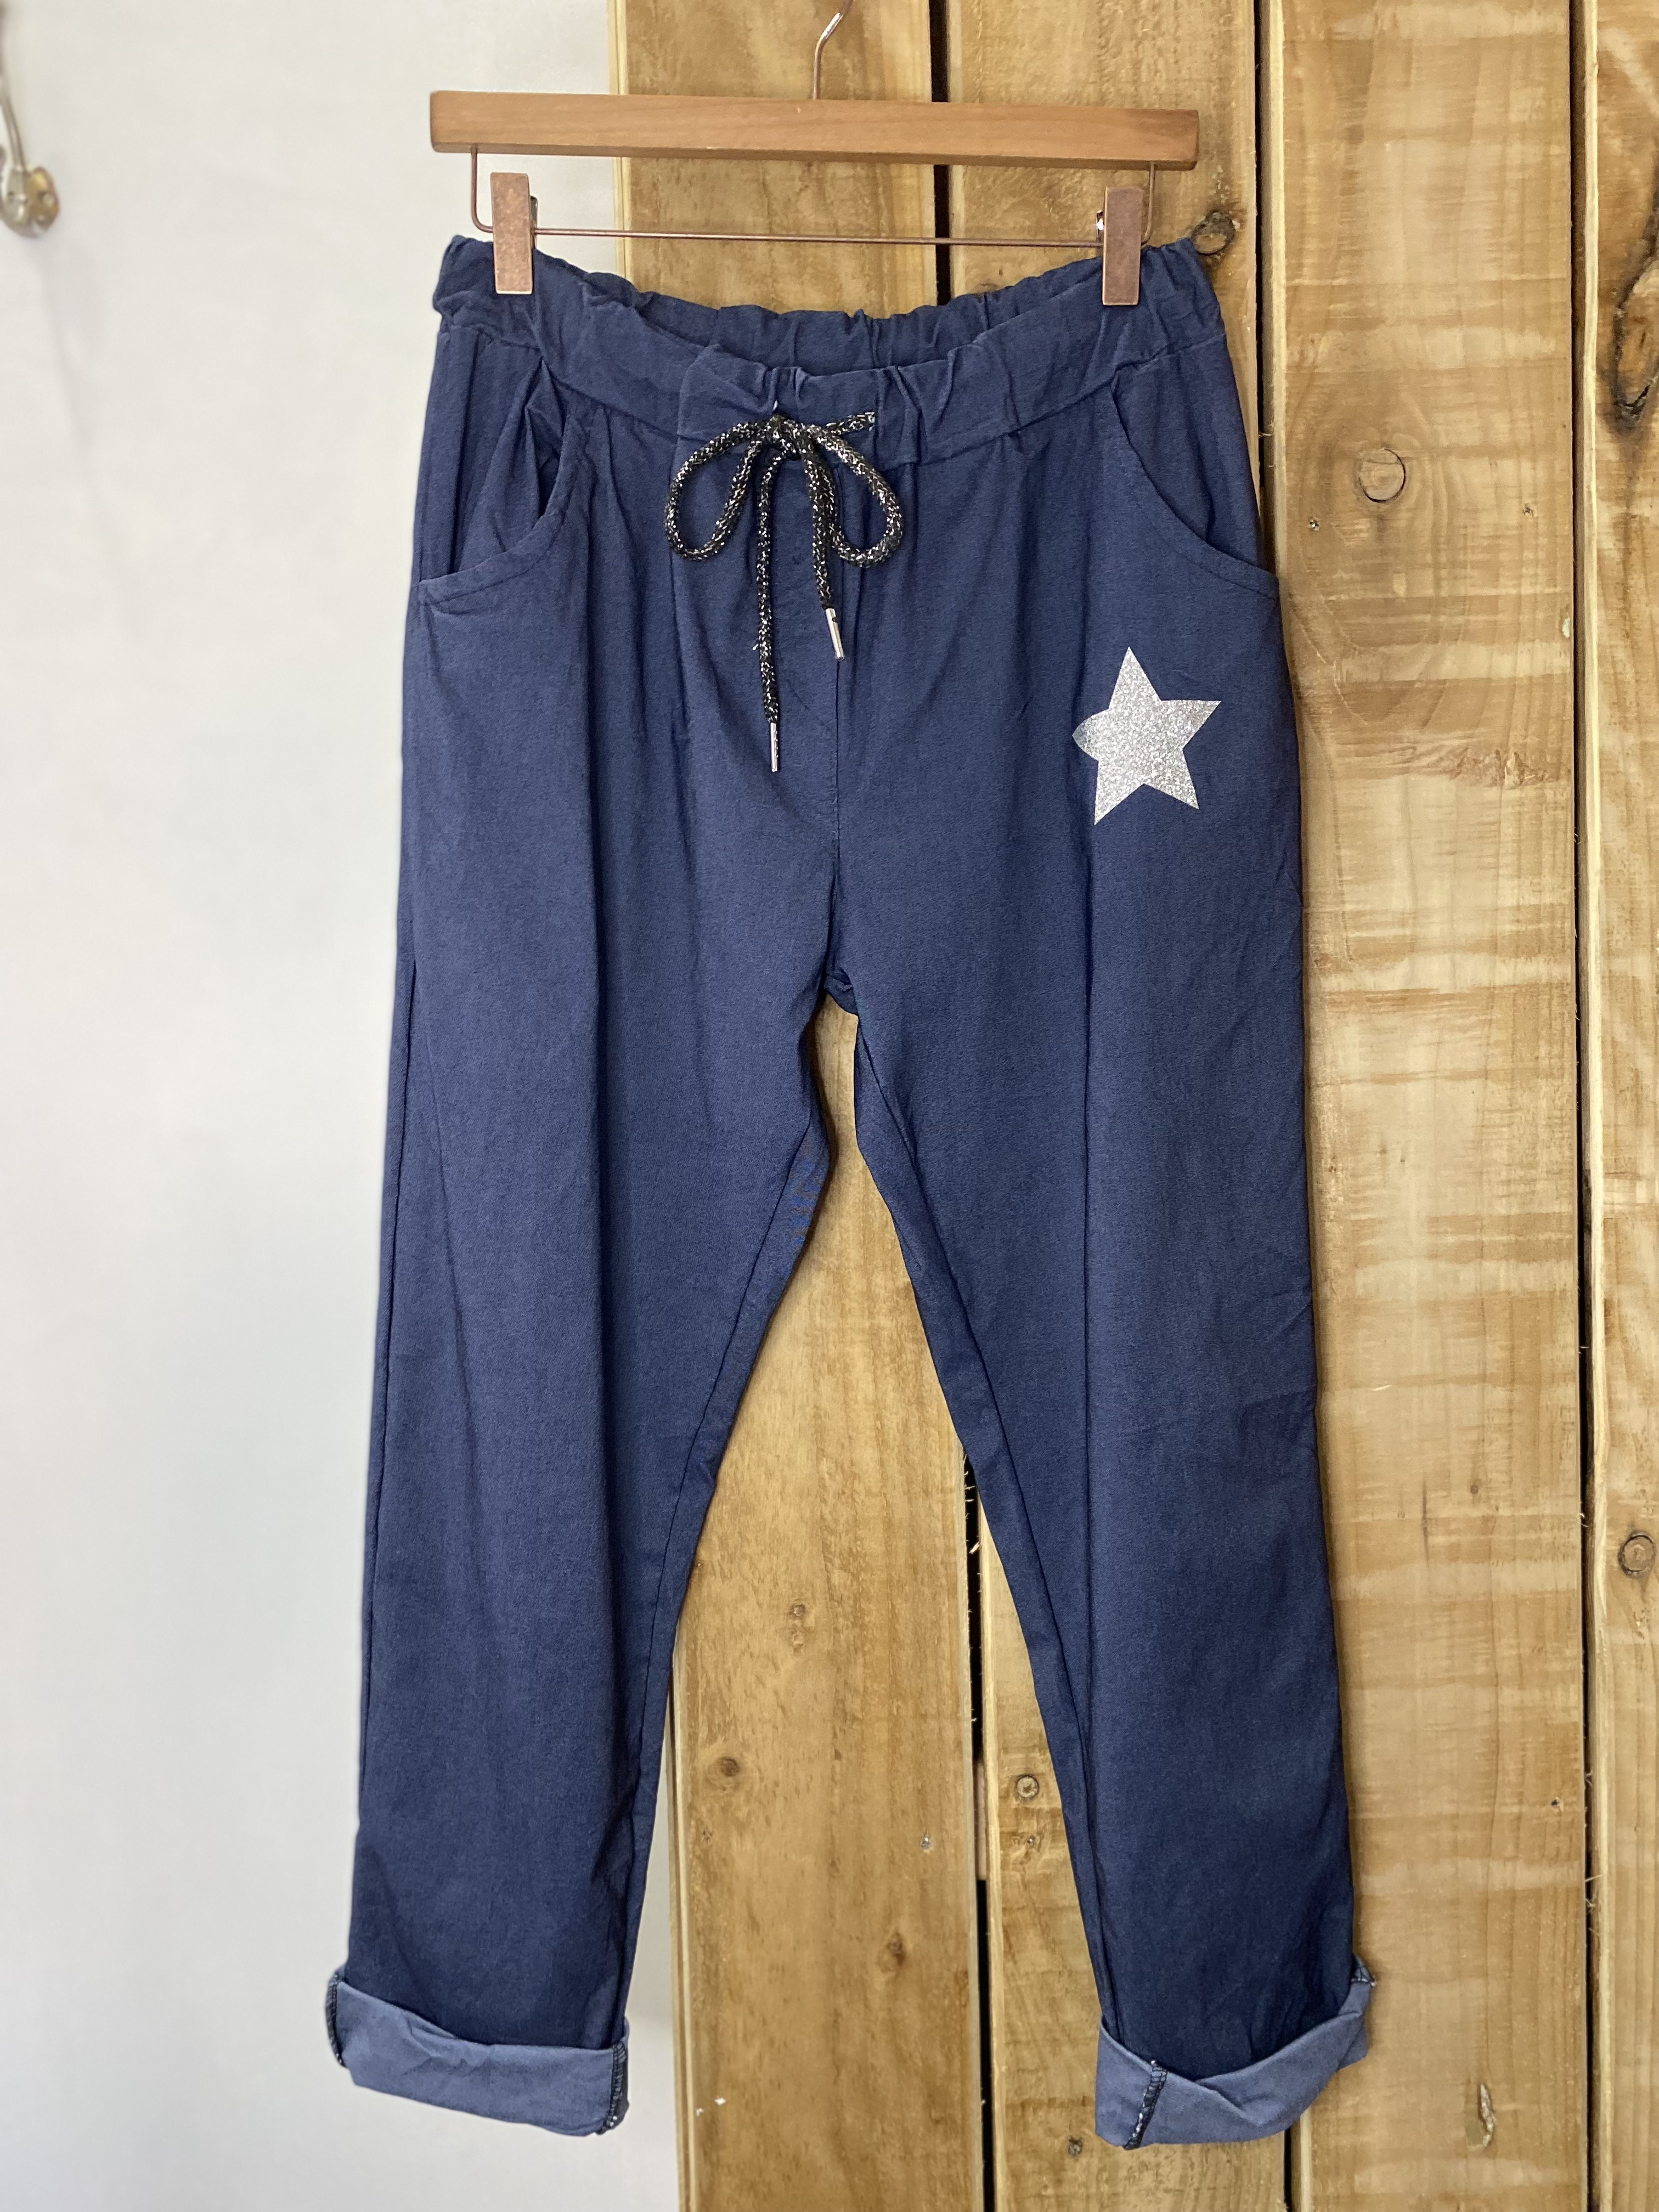 Stretchy Jean Style Trousers With Star